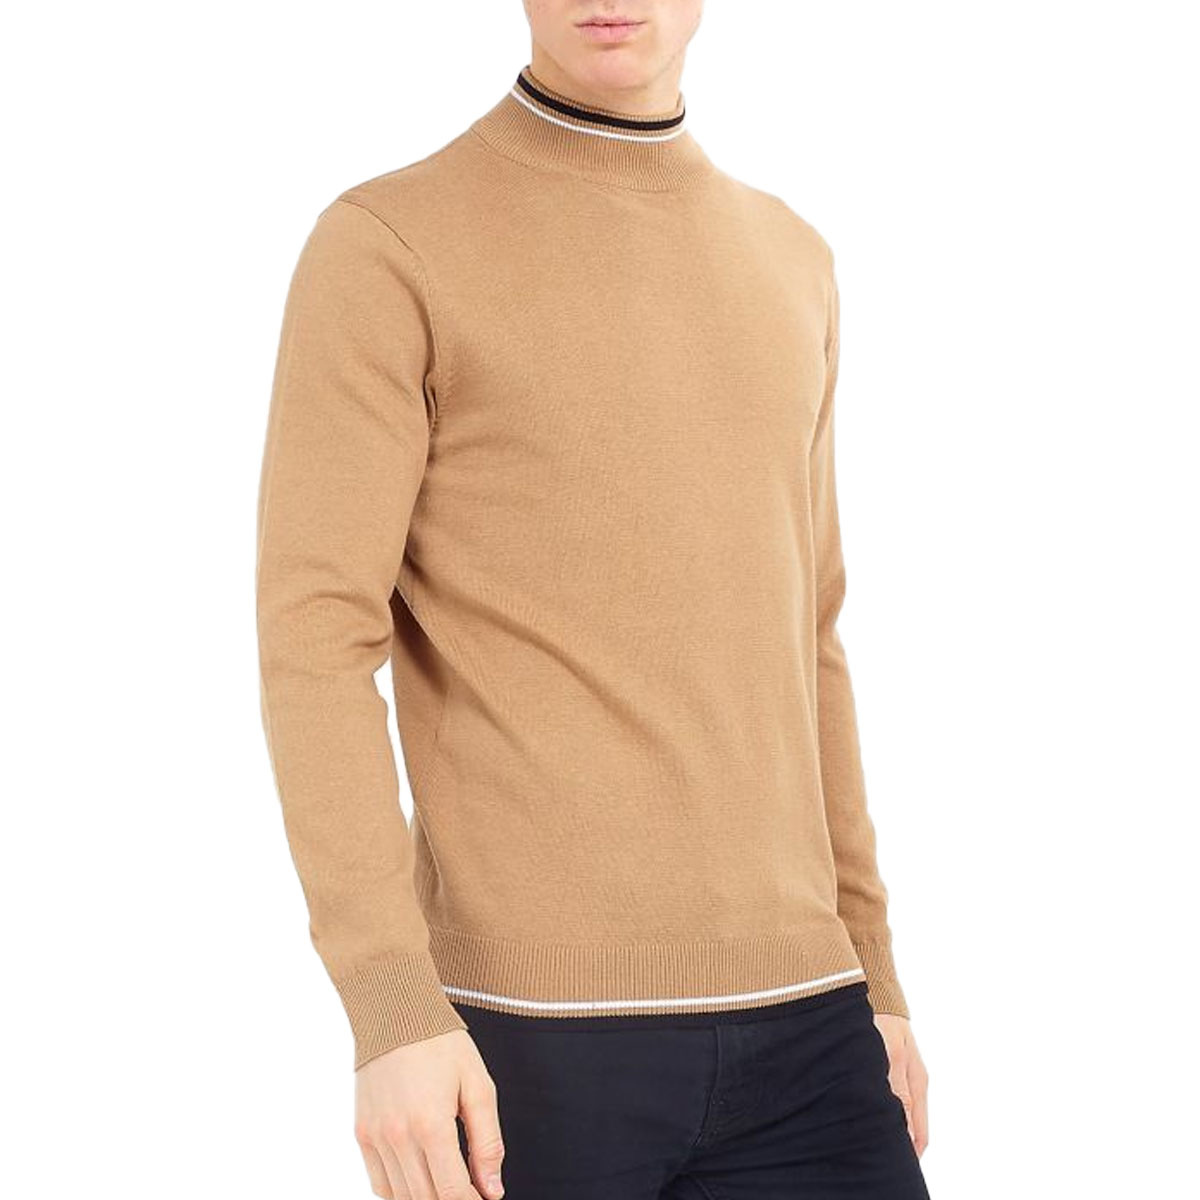 Brave-Soul-Mens-Turtle-Neck-Jumper-Contrast-Tipped-Hallis thumbnail 24